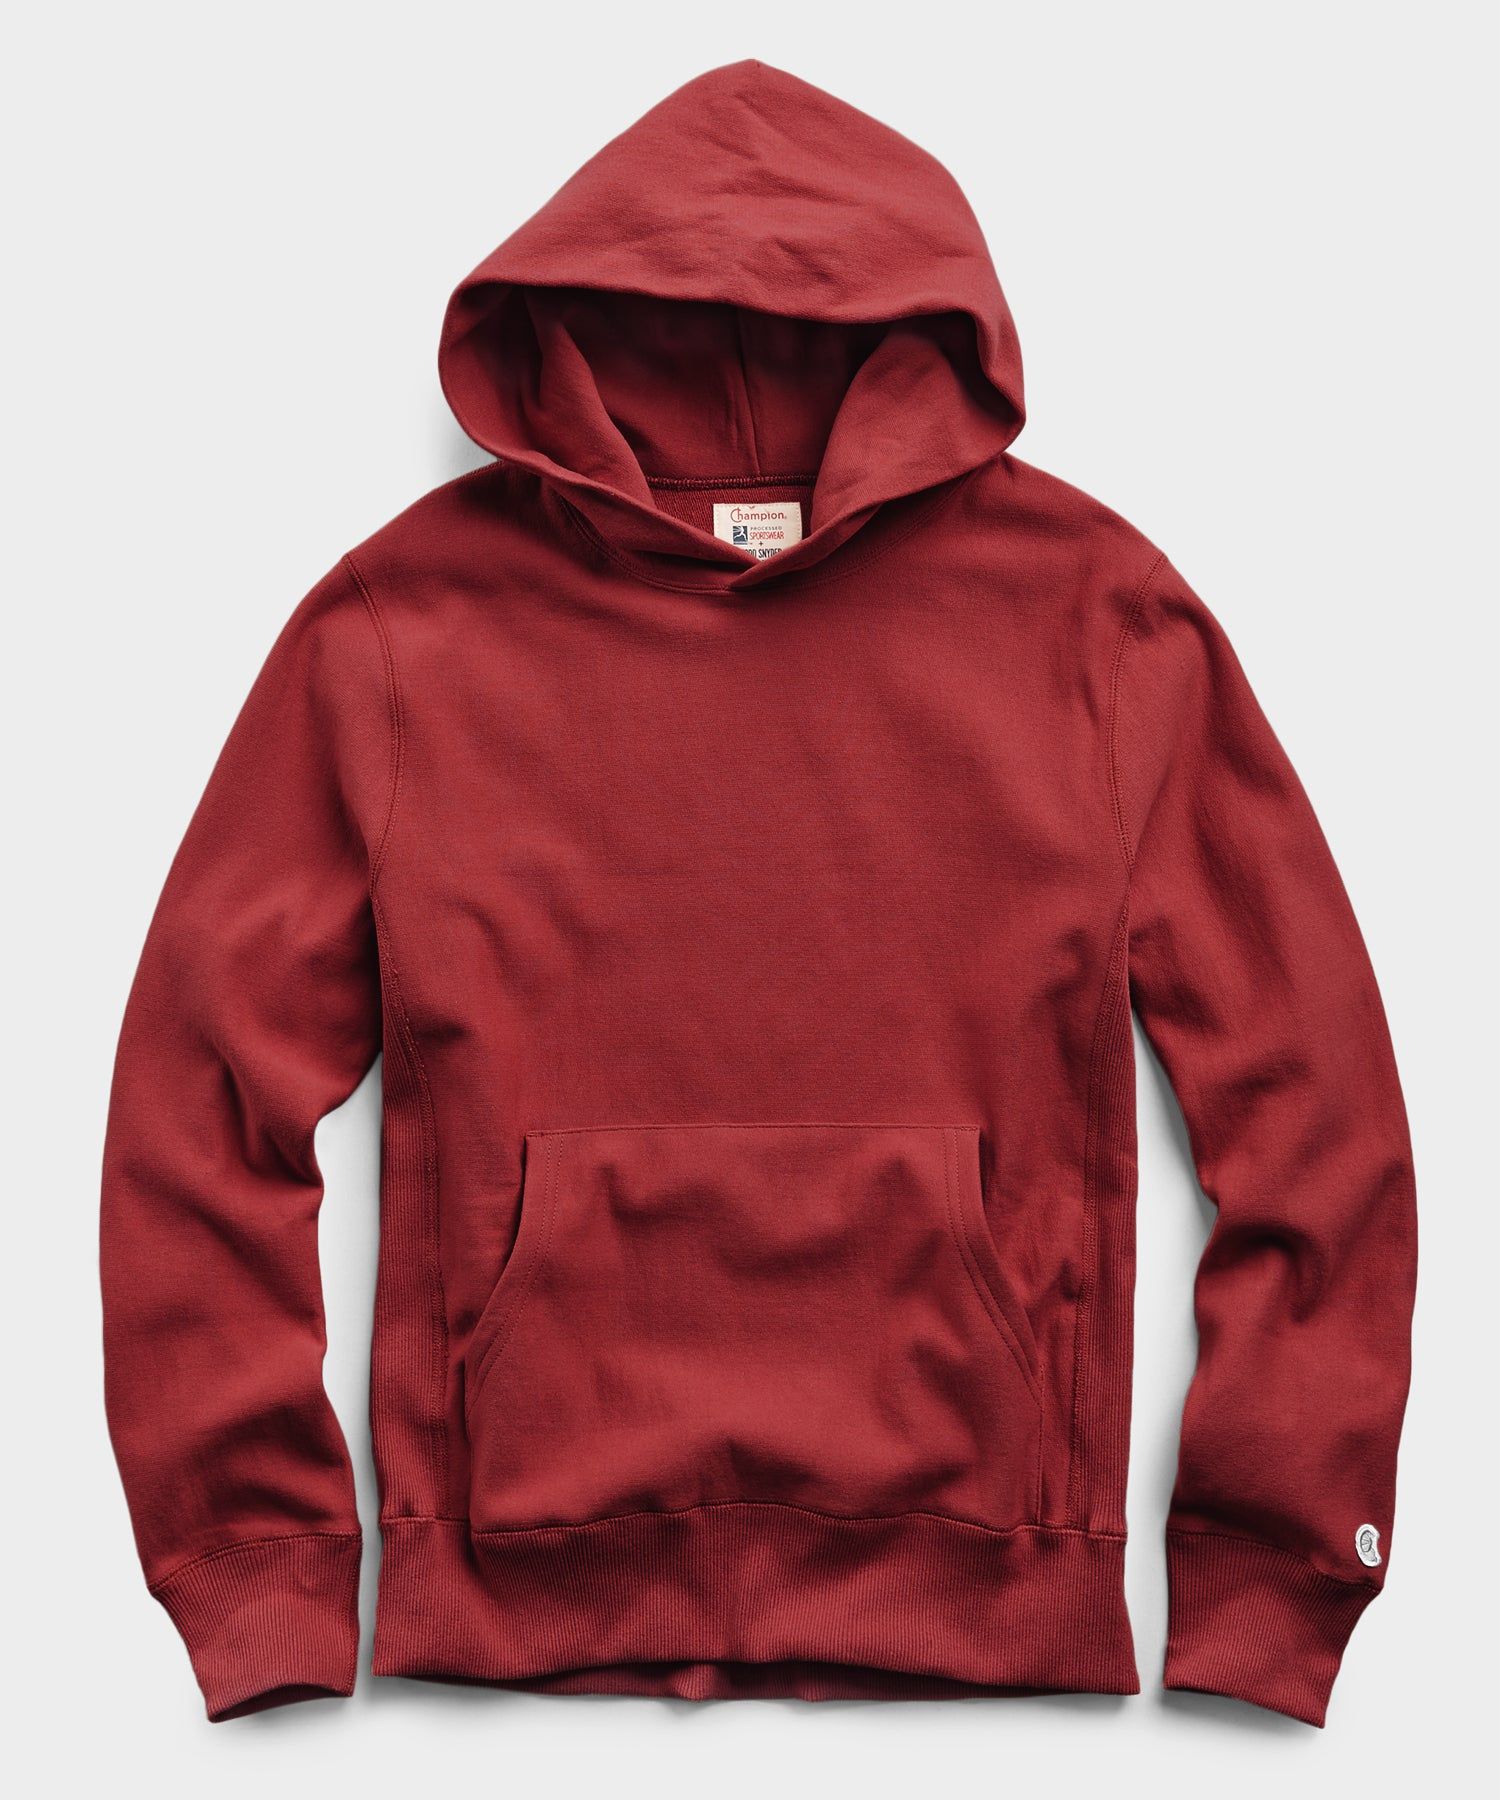 Popover Hoodie Sweatshirt in Crimson Red